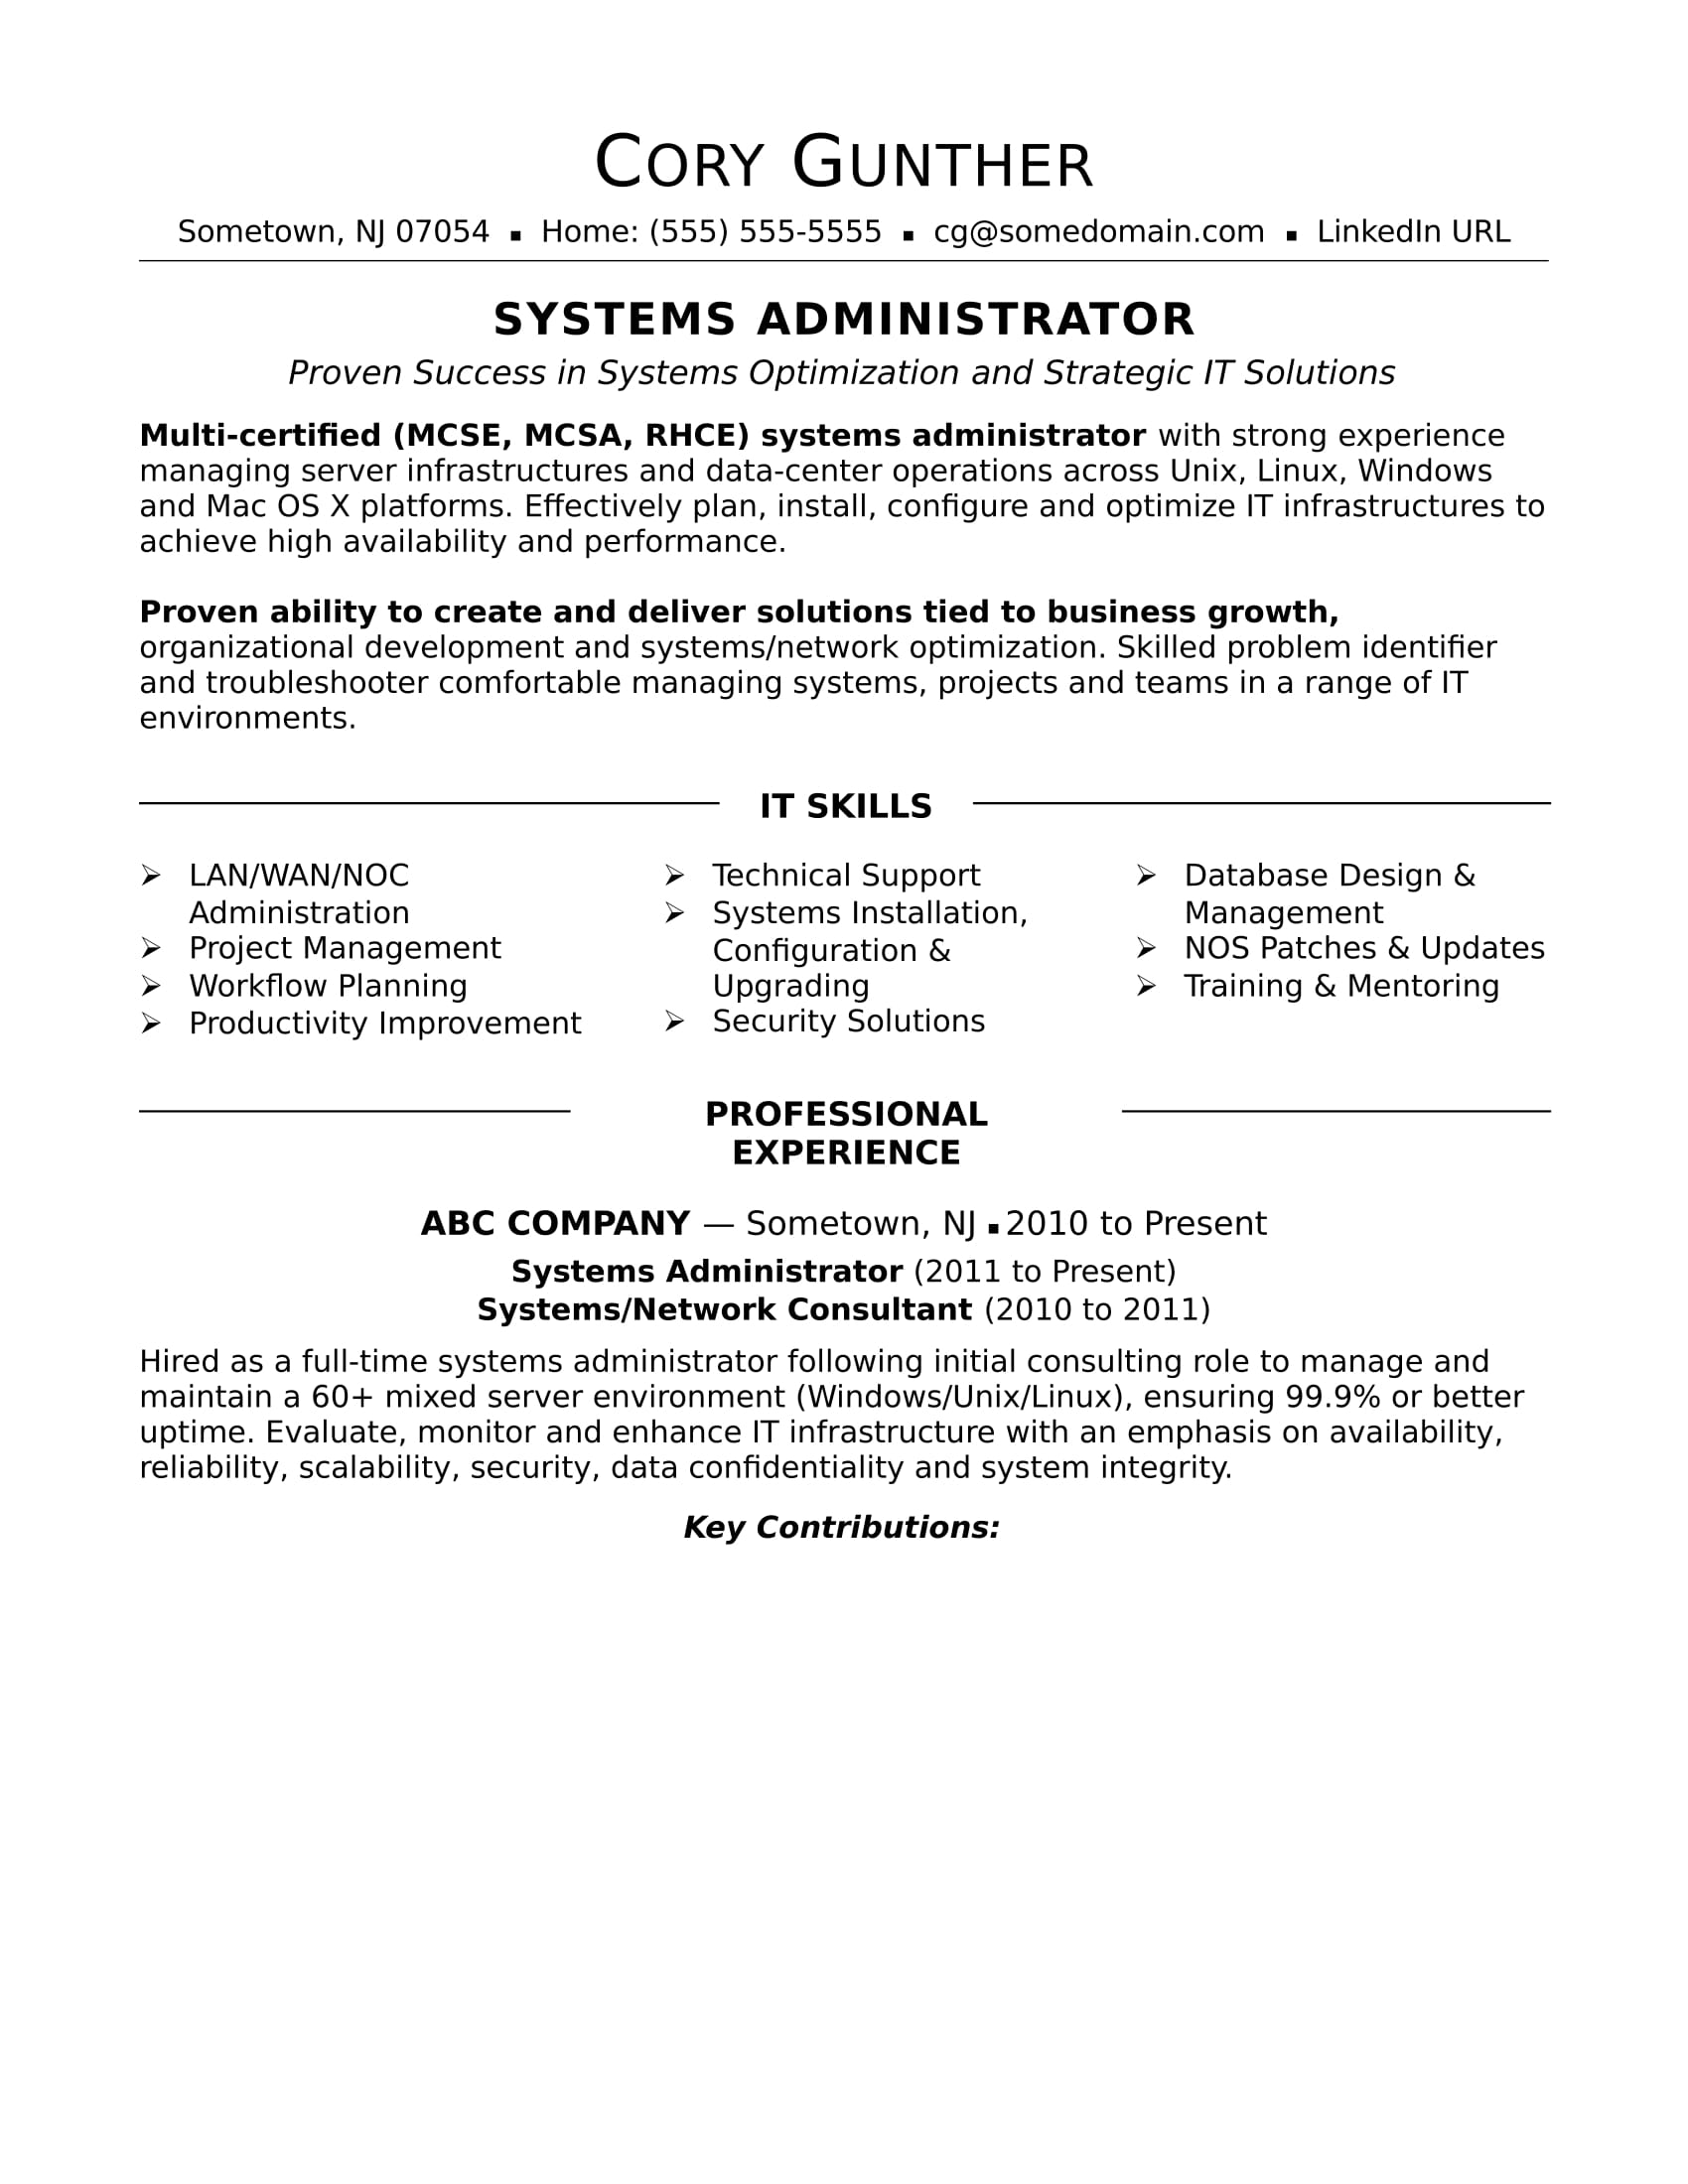 Sample Resume For An Experienced Systems Administrator  Resume Experience